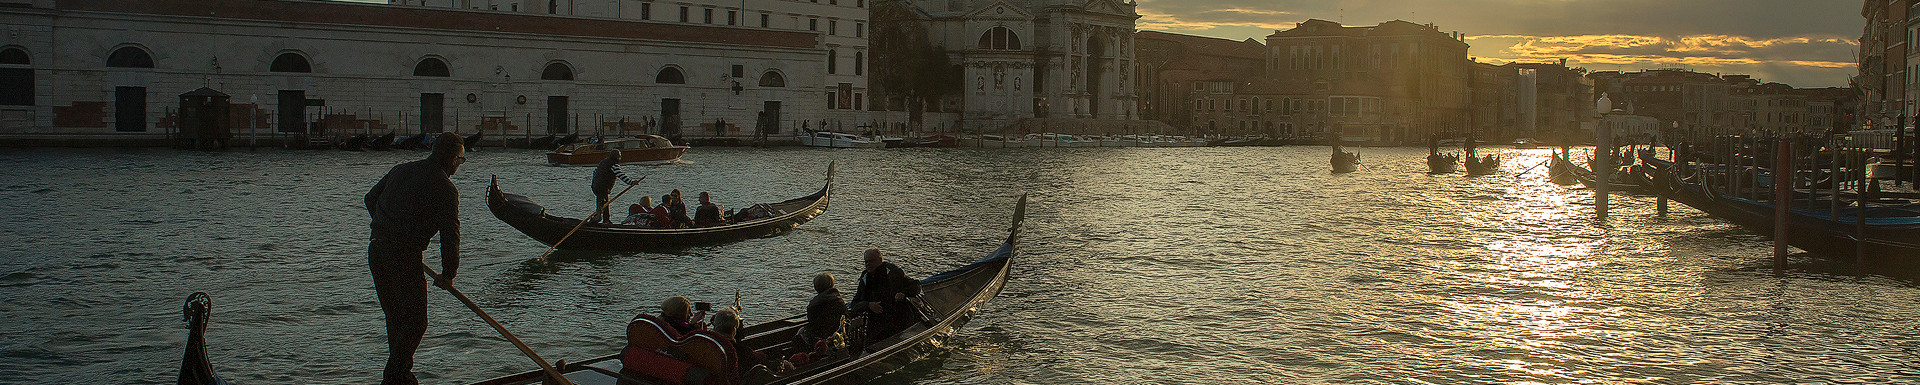 Last Evening on the Grand Canal